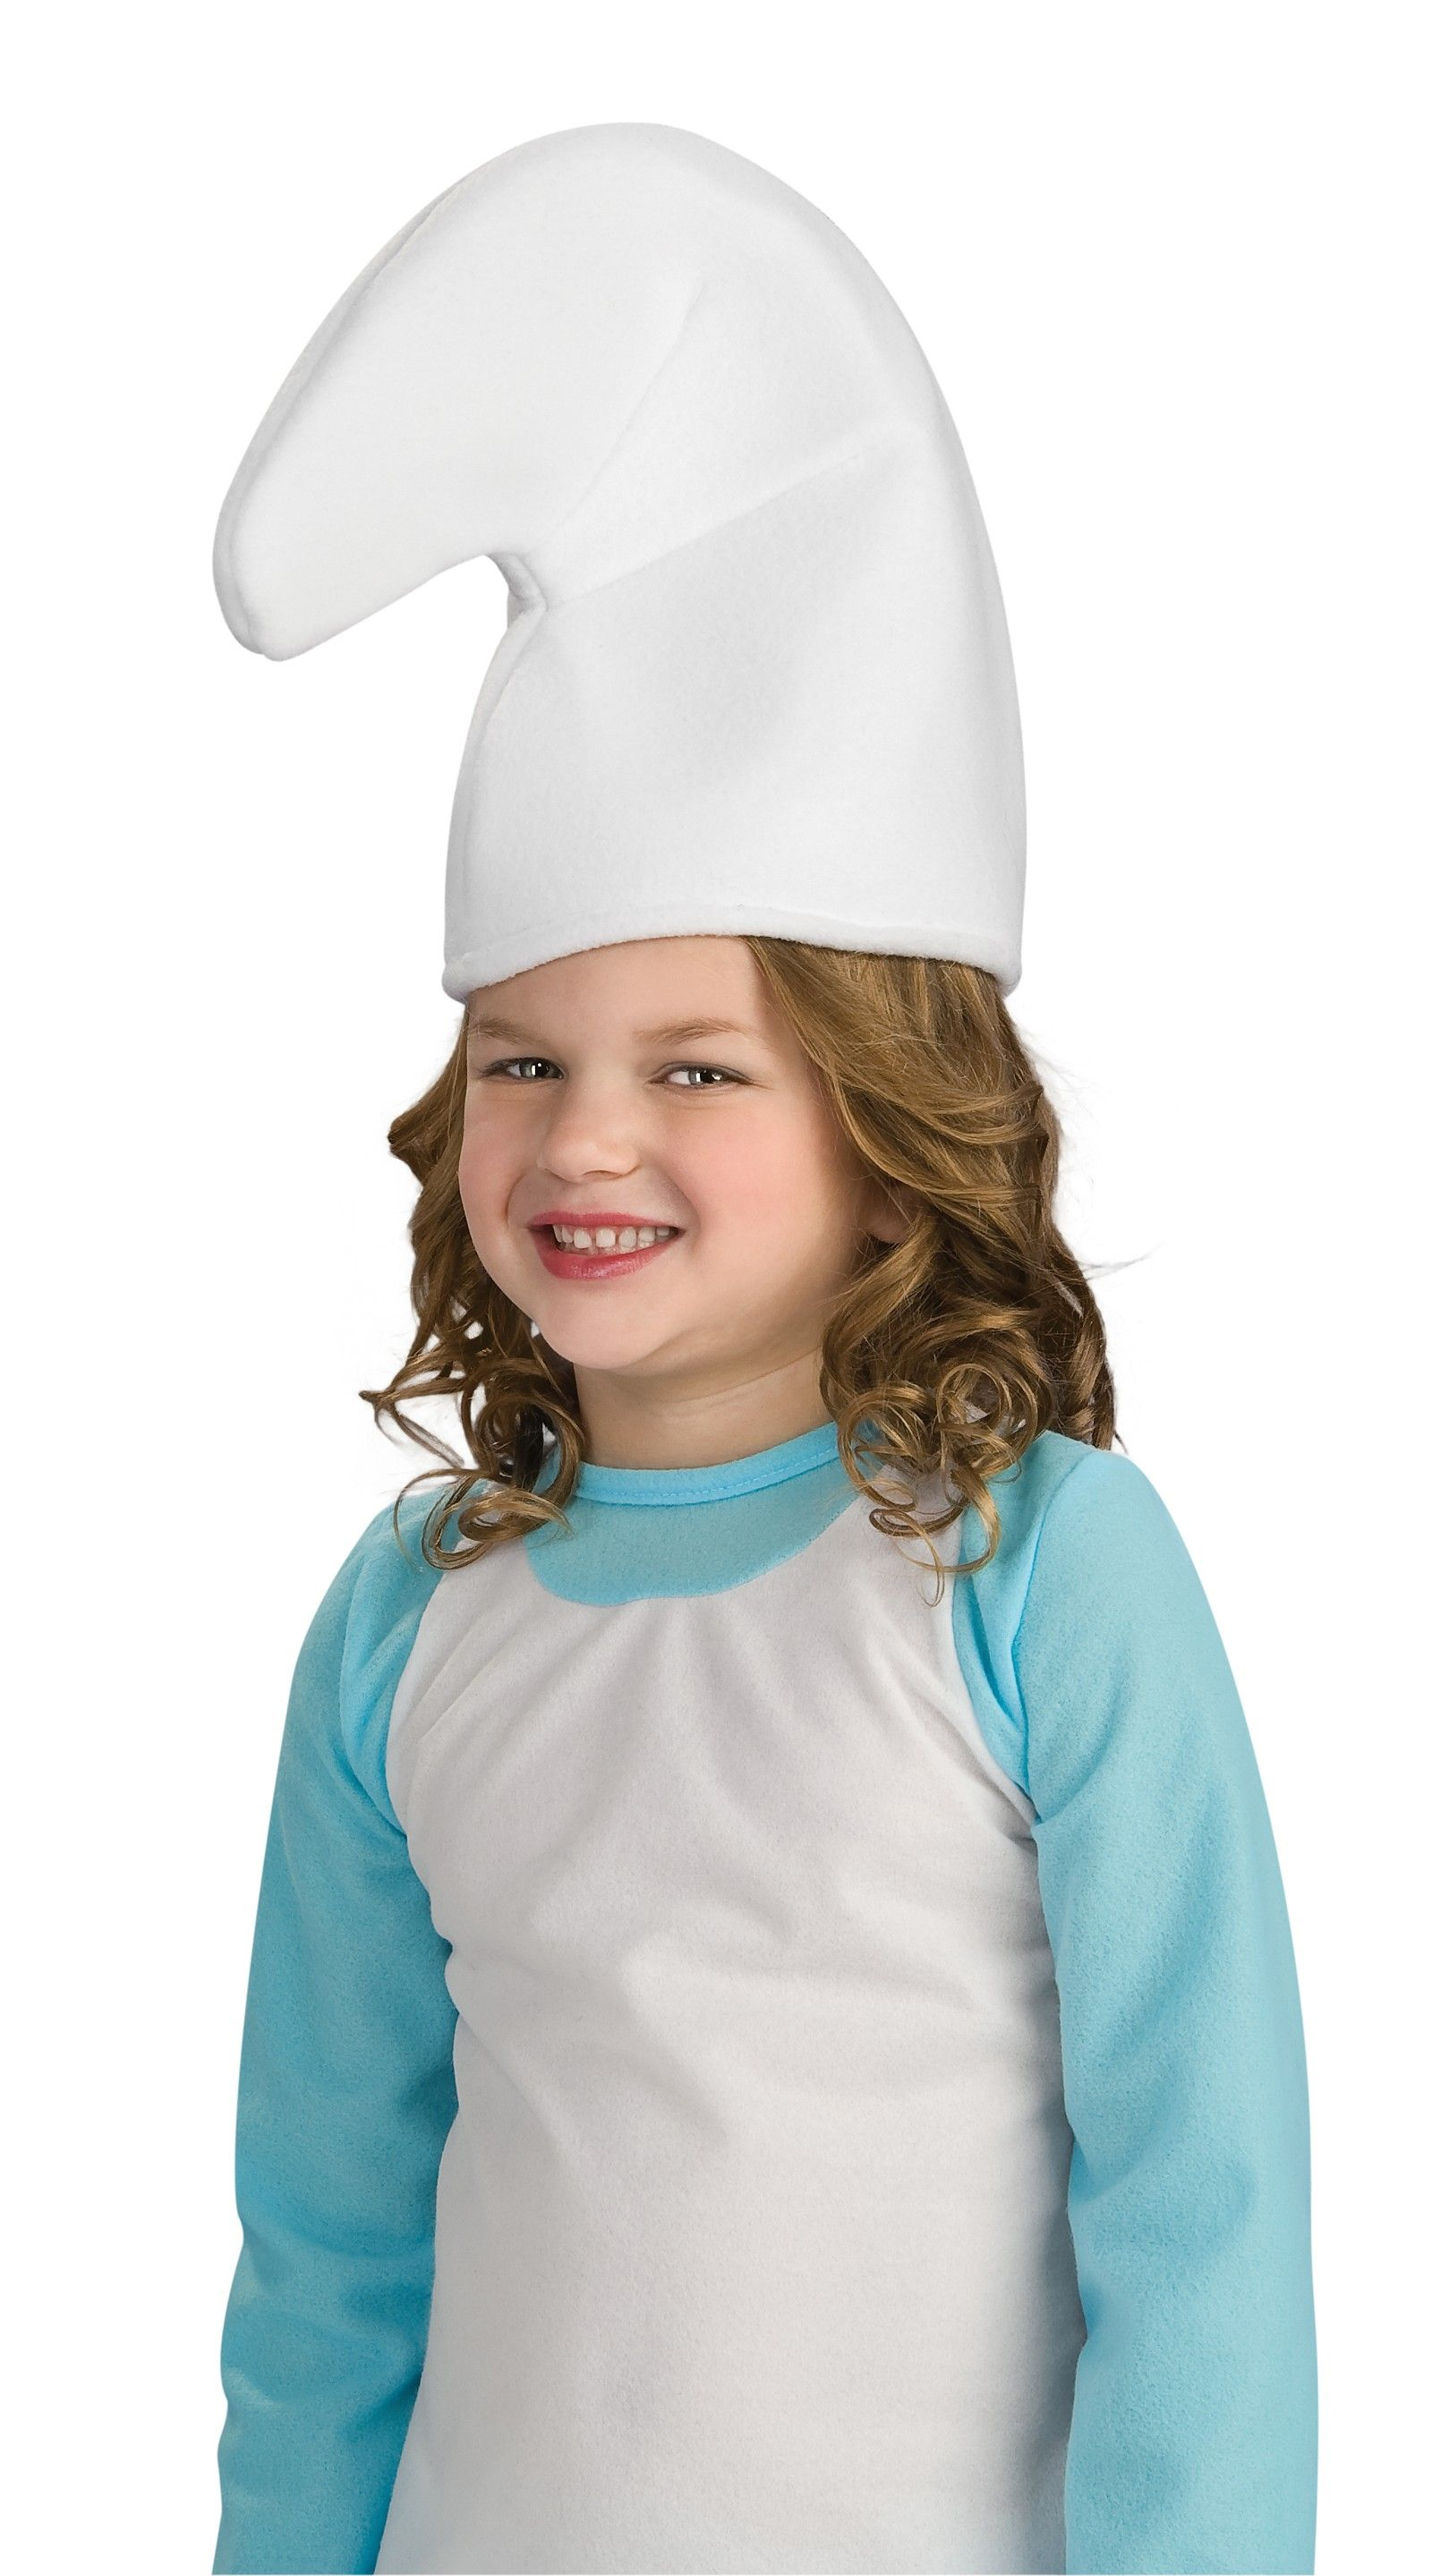 The Smurfs - Child Gnome Hat Costume Accessory | The Smurfs ...